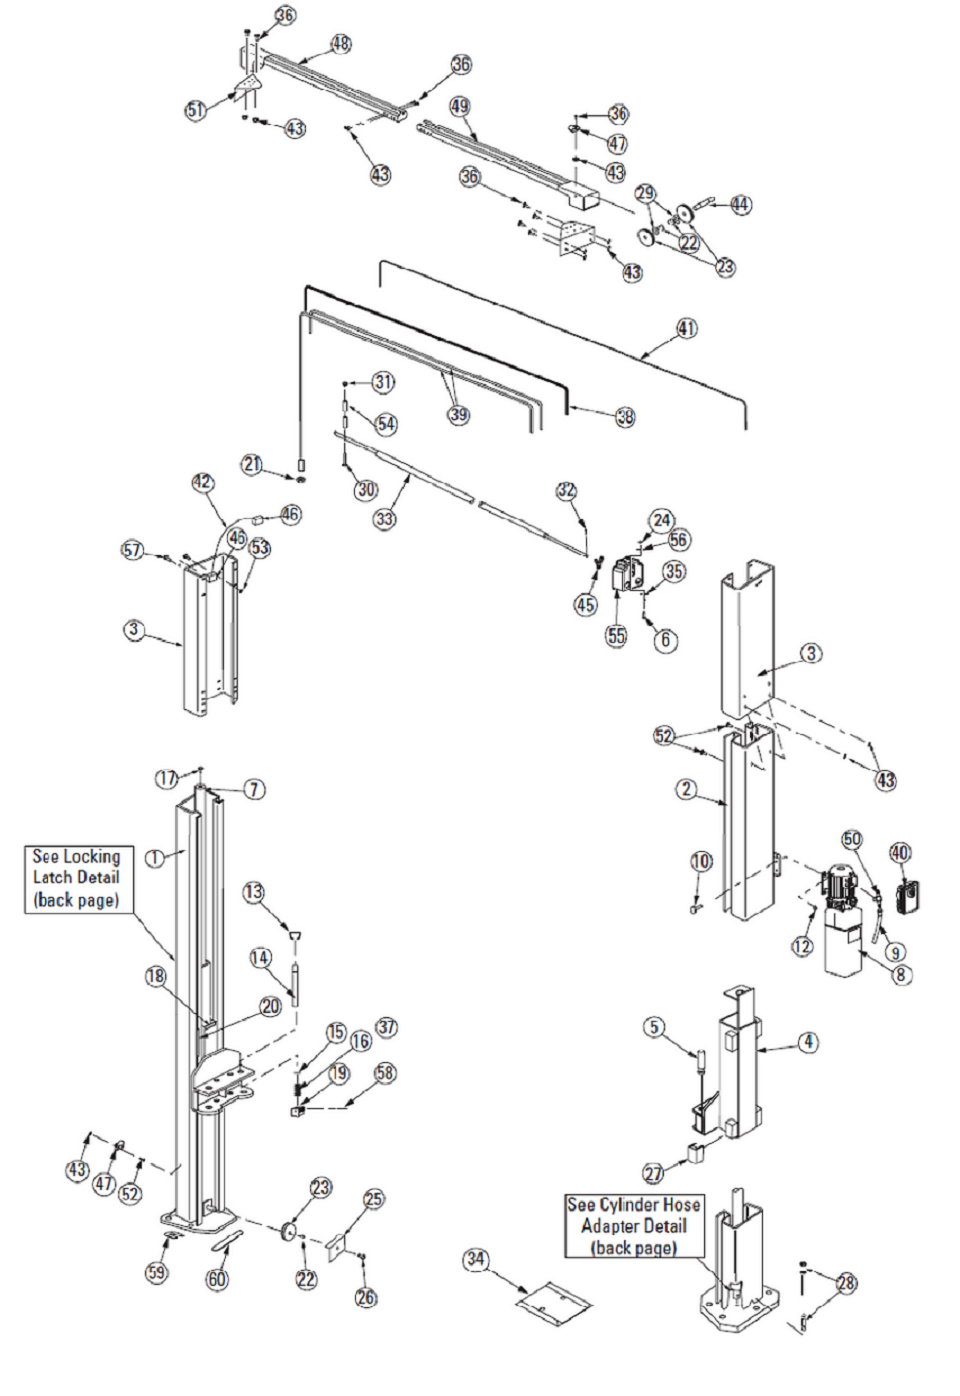 Rotary Lift Cylinder Parts : Rotary spoa parts diagram